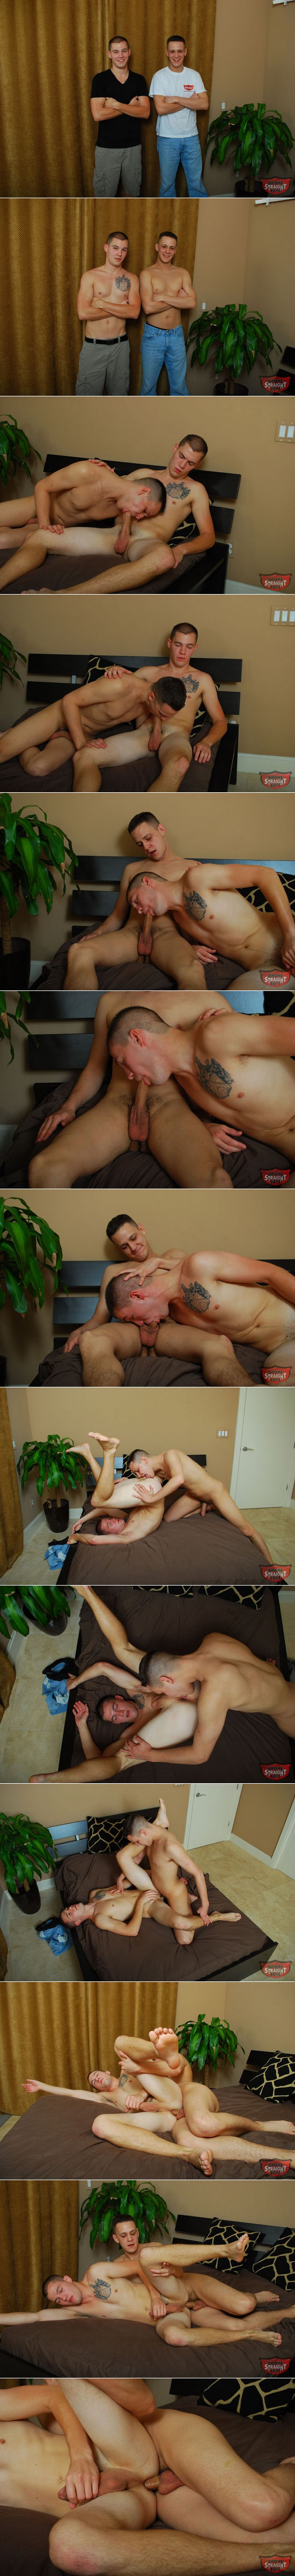 Broke Straight Boys trial membership